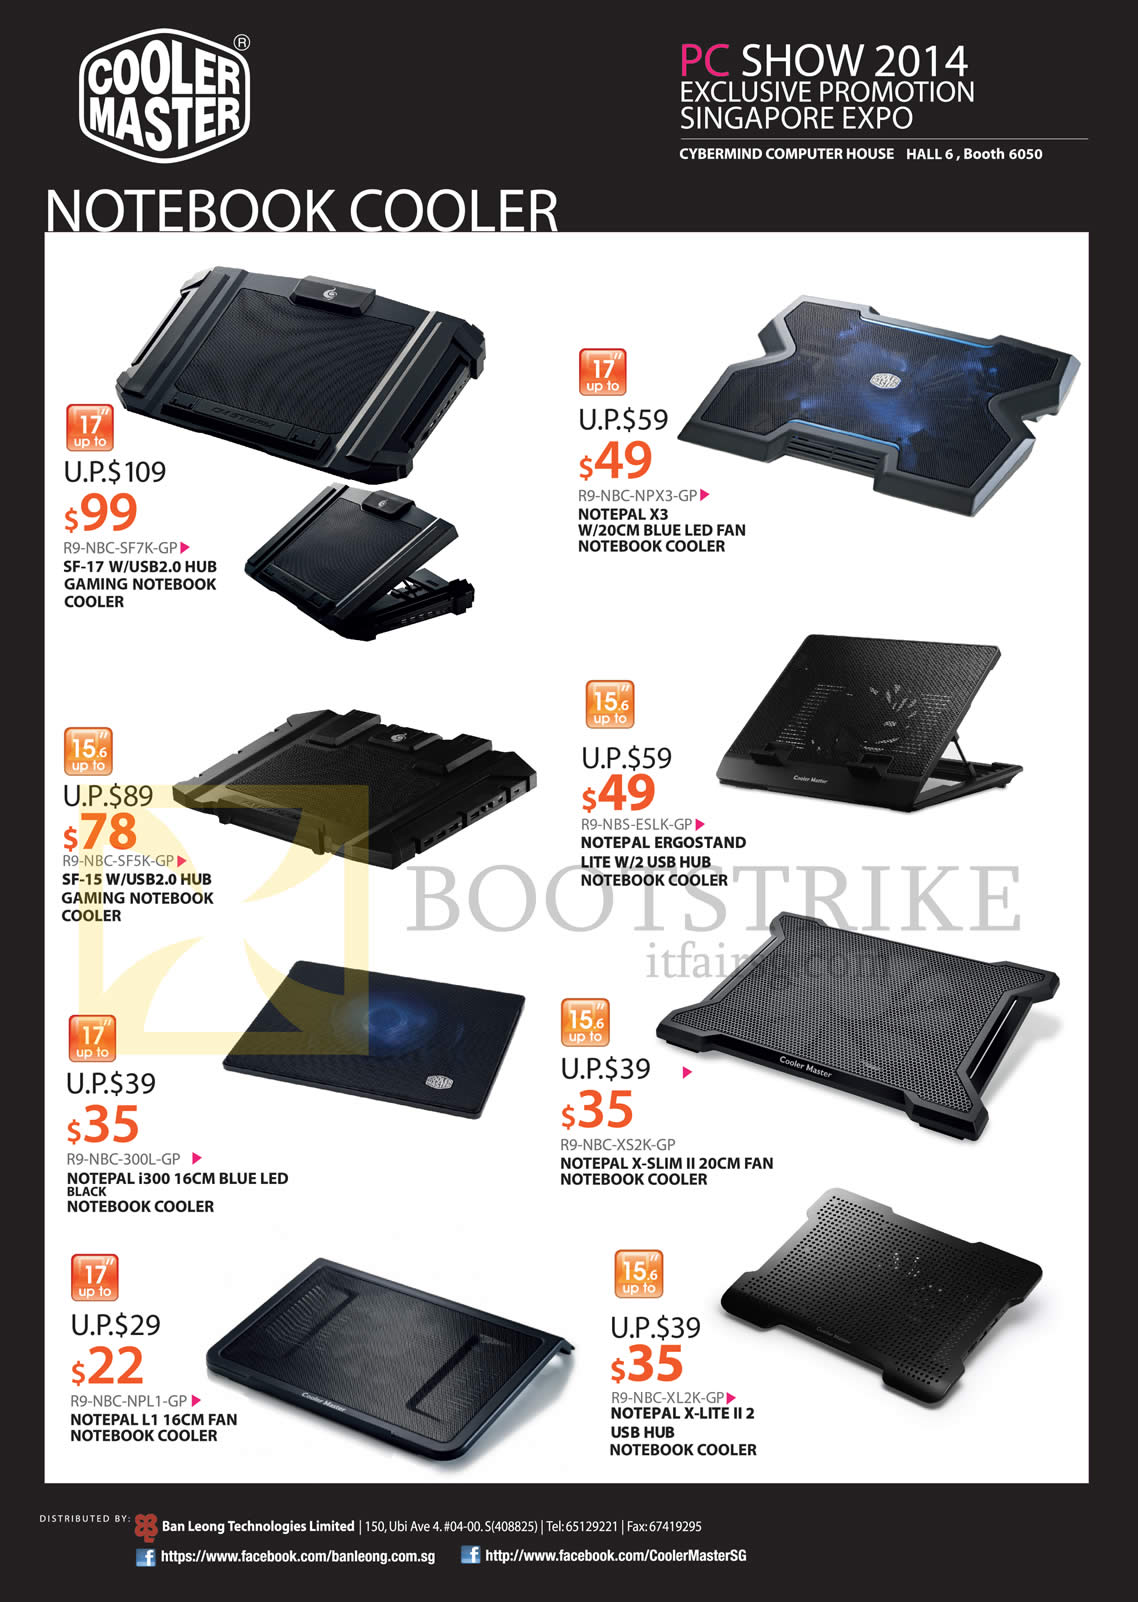 PC SHOW 2014 price list image brochure of Cybermind Cooler Master Notebook Coolers SF-17, SF-15, Notepal I300, L1, X3, Ergostand Lite W2, X-Slim II, X-Lite II